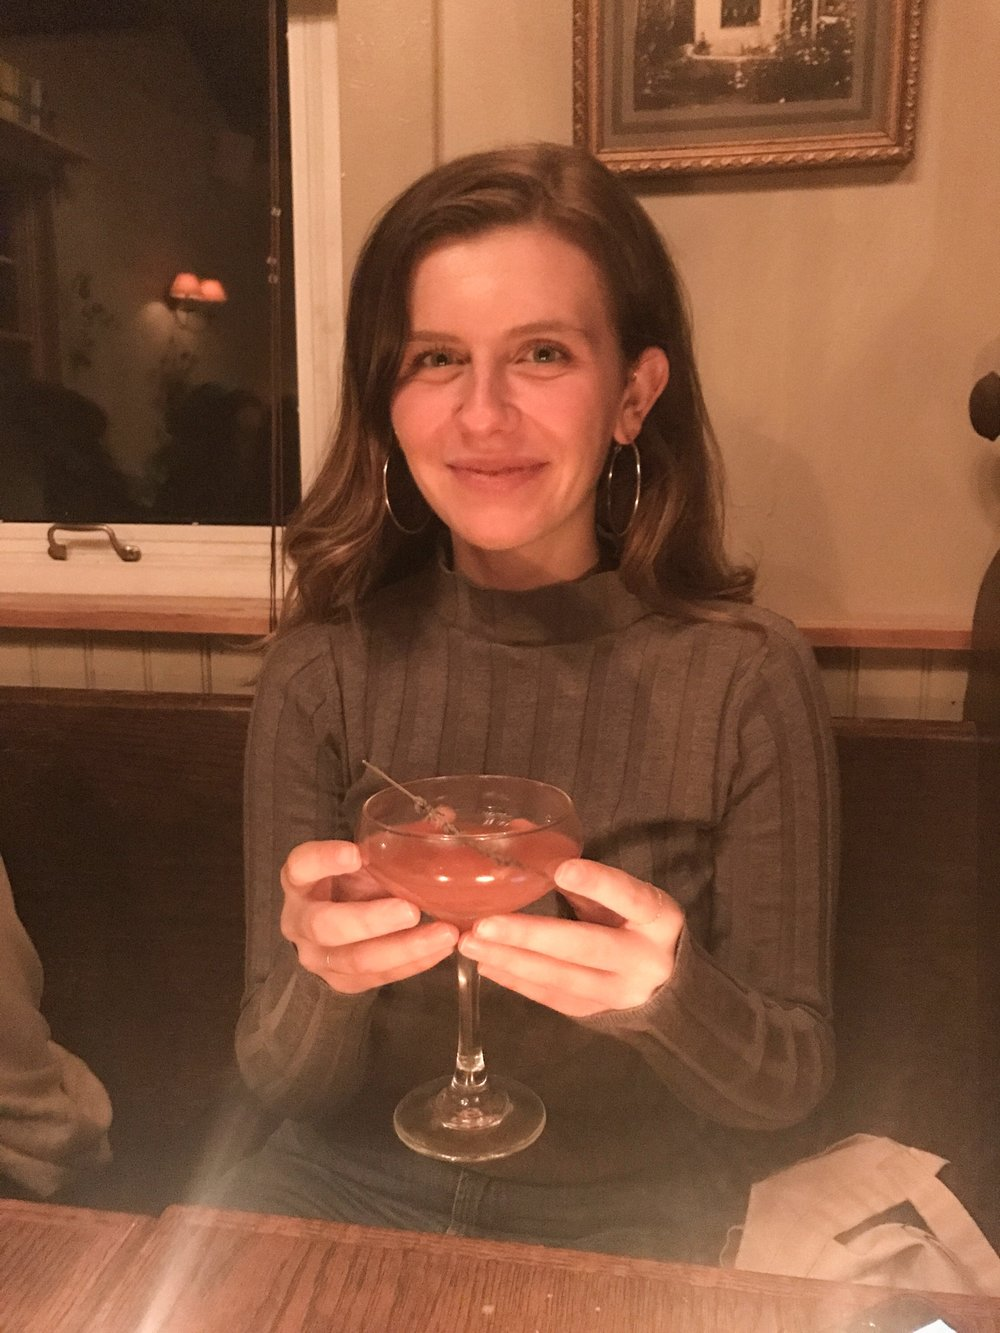 Here I am drinking Vida Mezcal, Aperol, lavender, honey, grapefruit, lemon, lavender bitters. It was so GROSS, but I smiled for the picture anyway for my dear friend Sarah.